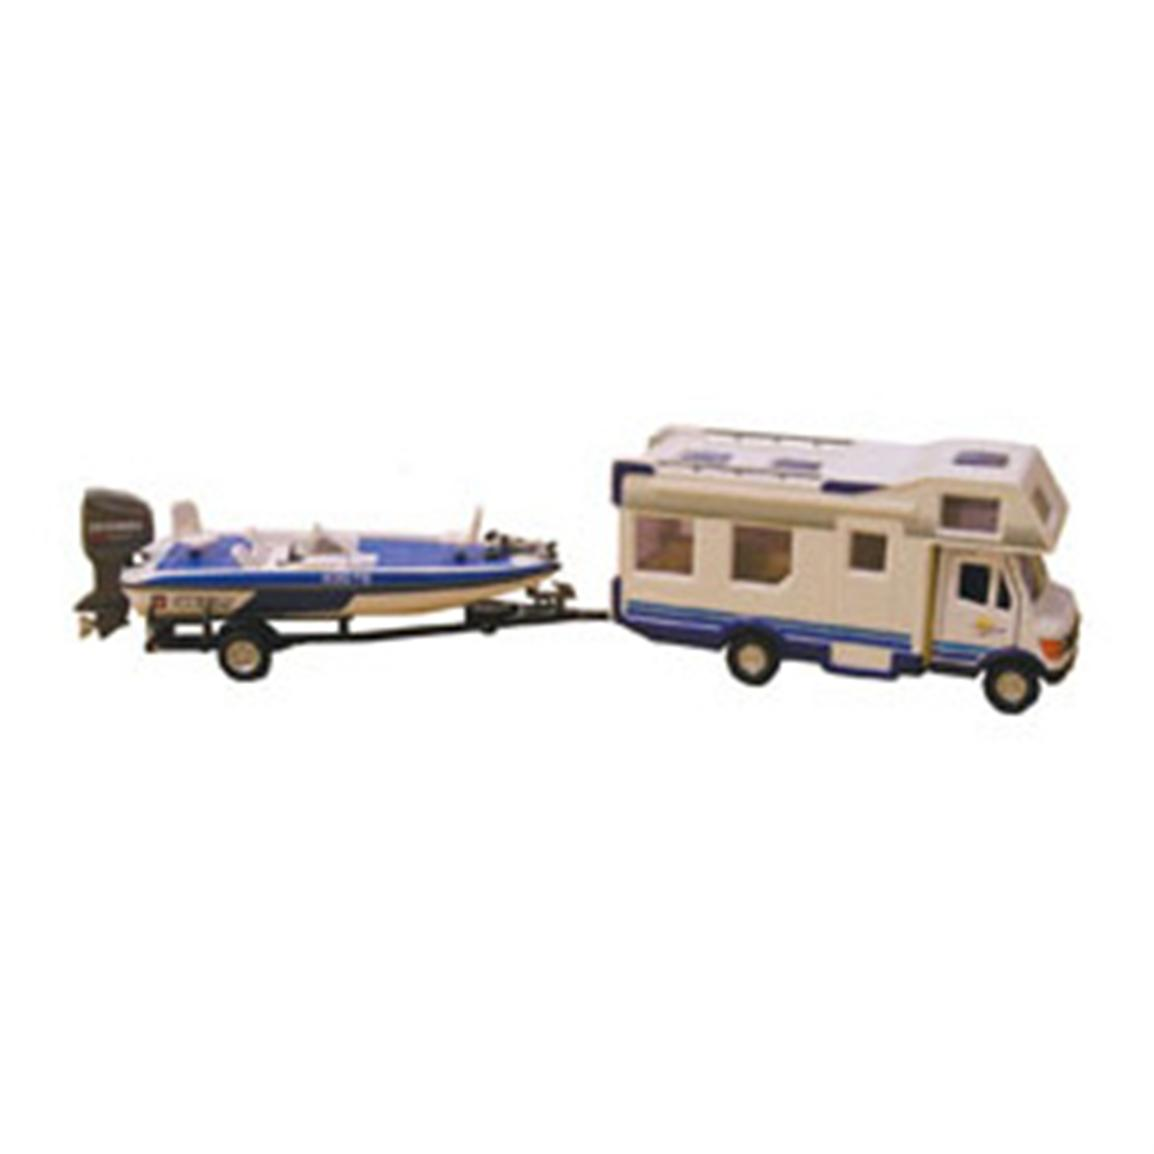 Prime Mini Motorhome and Boat Toys